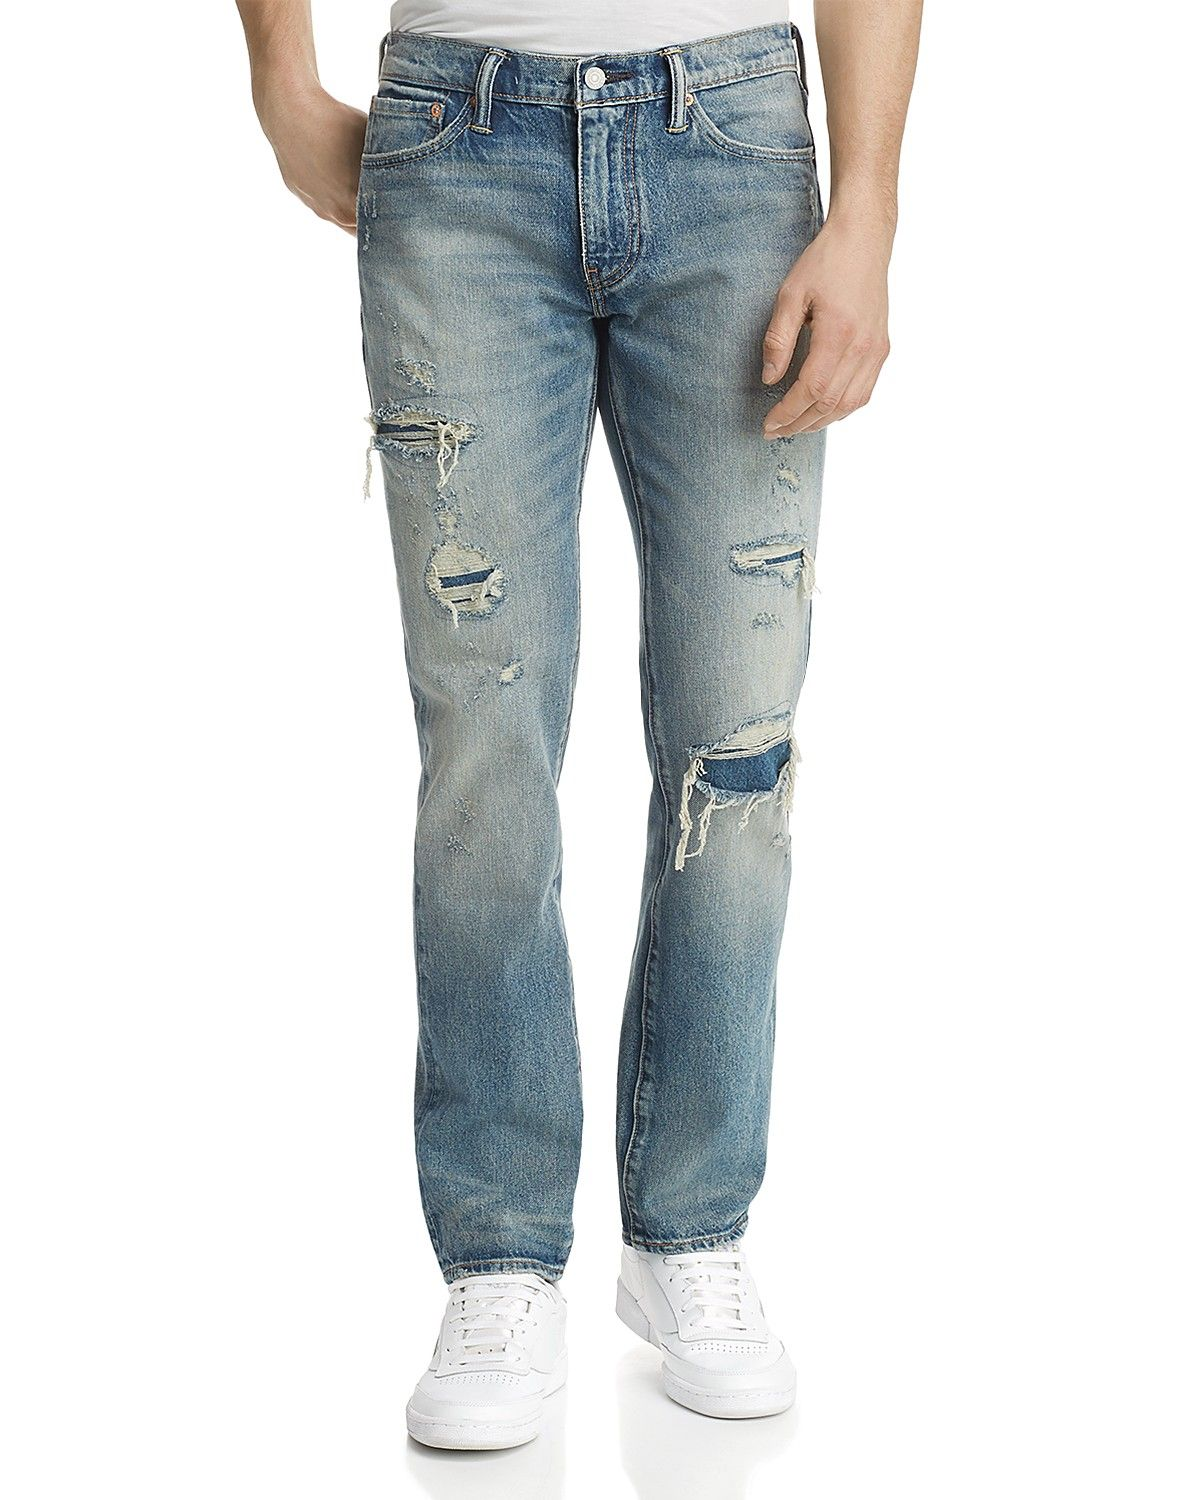 levis denim sale